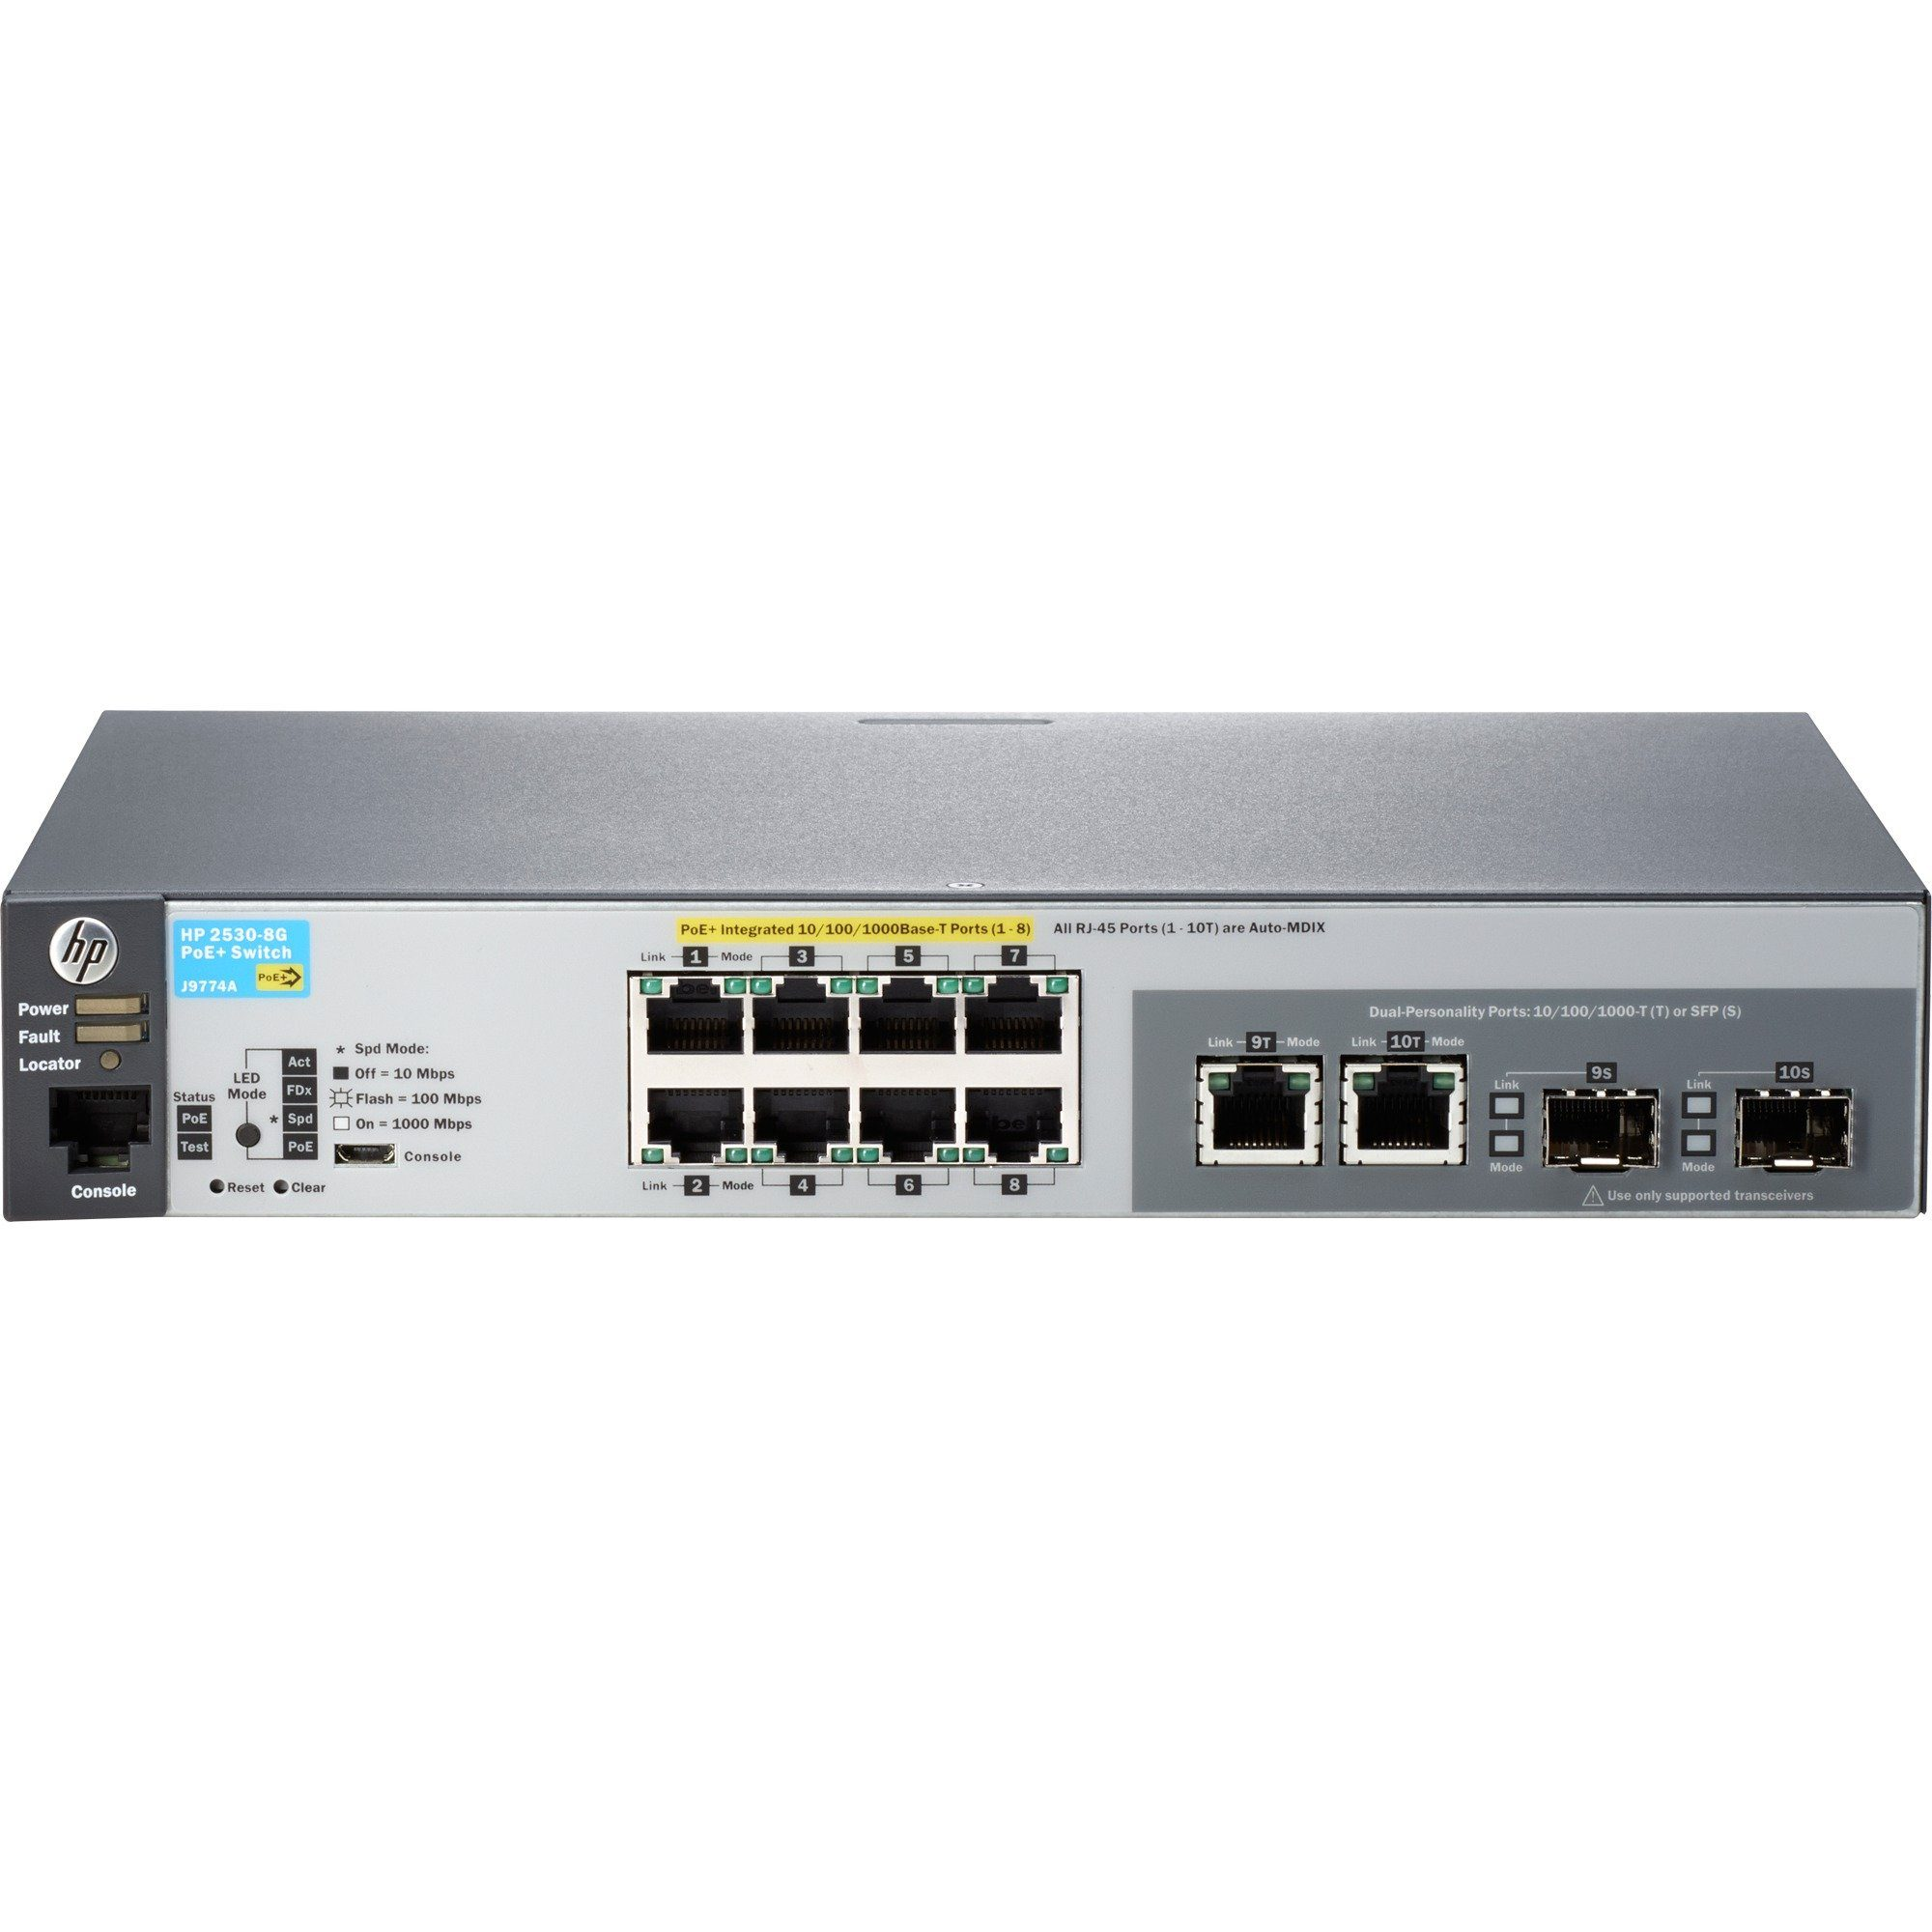 Hewlett-Packard Switch »2530-8G-PoE+ (J9774A)«